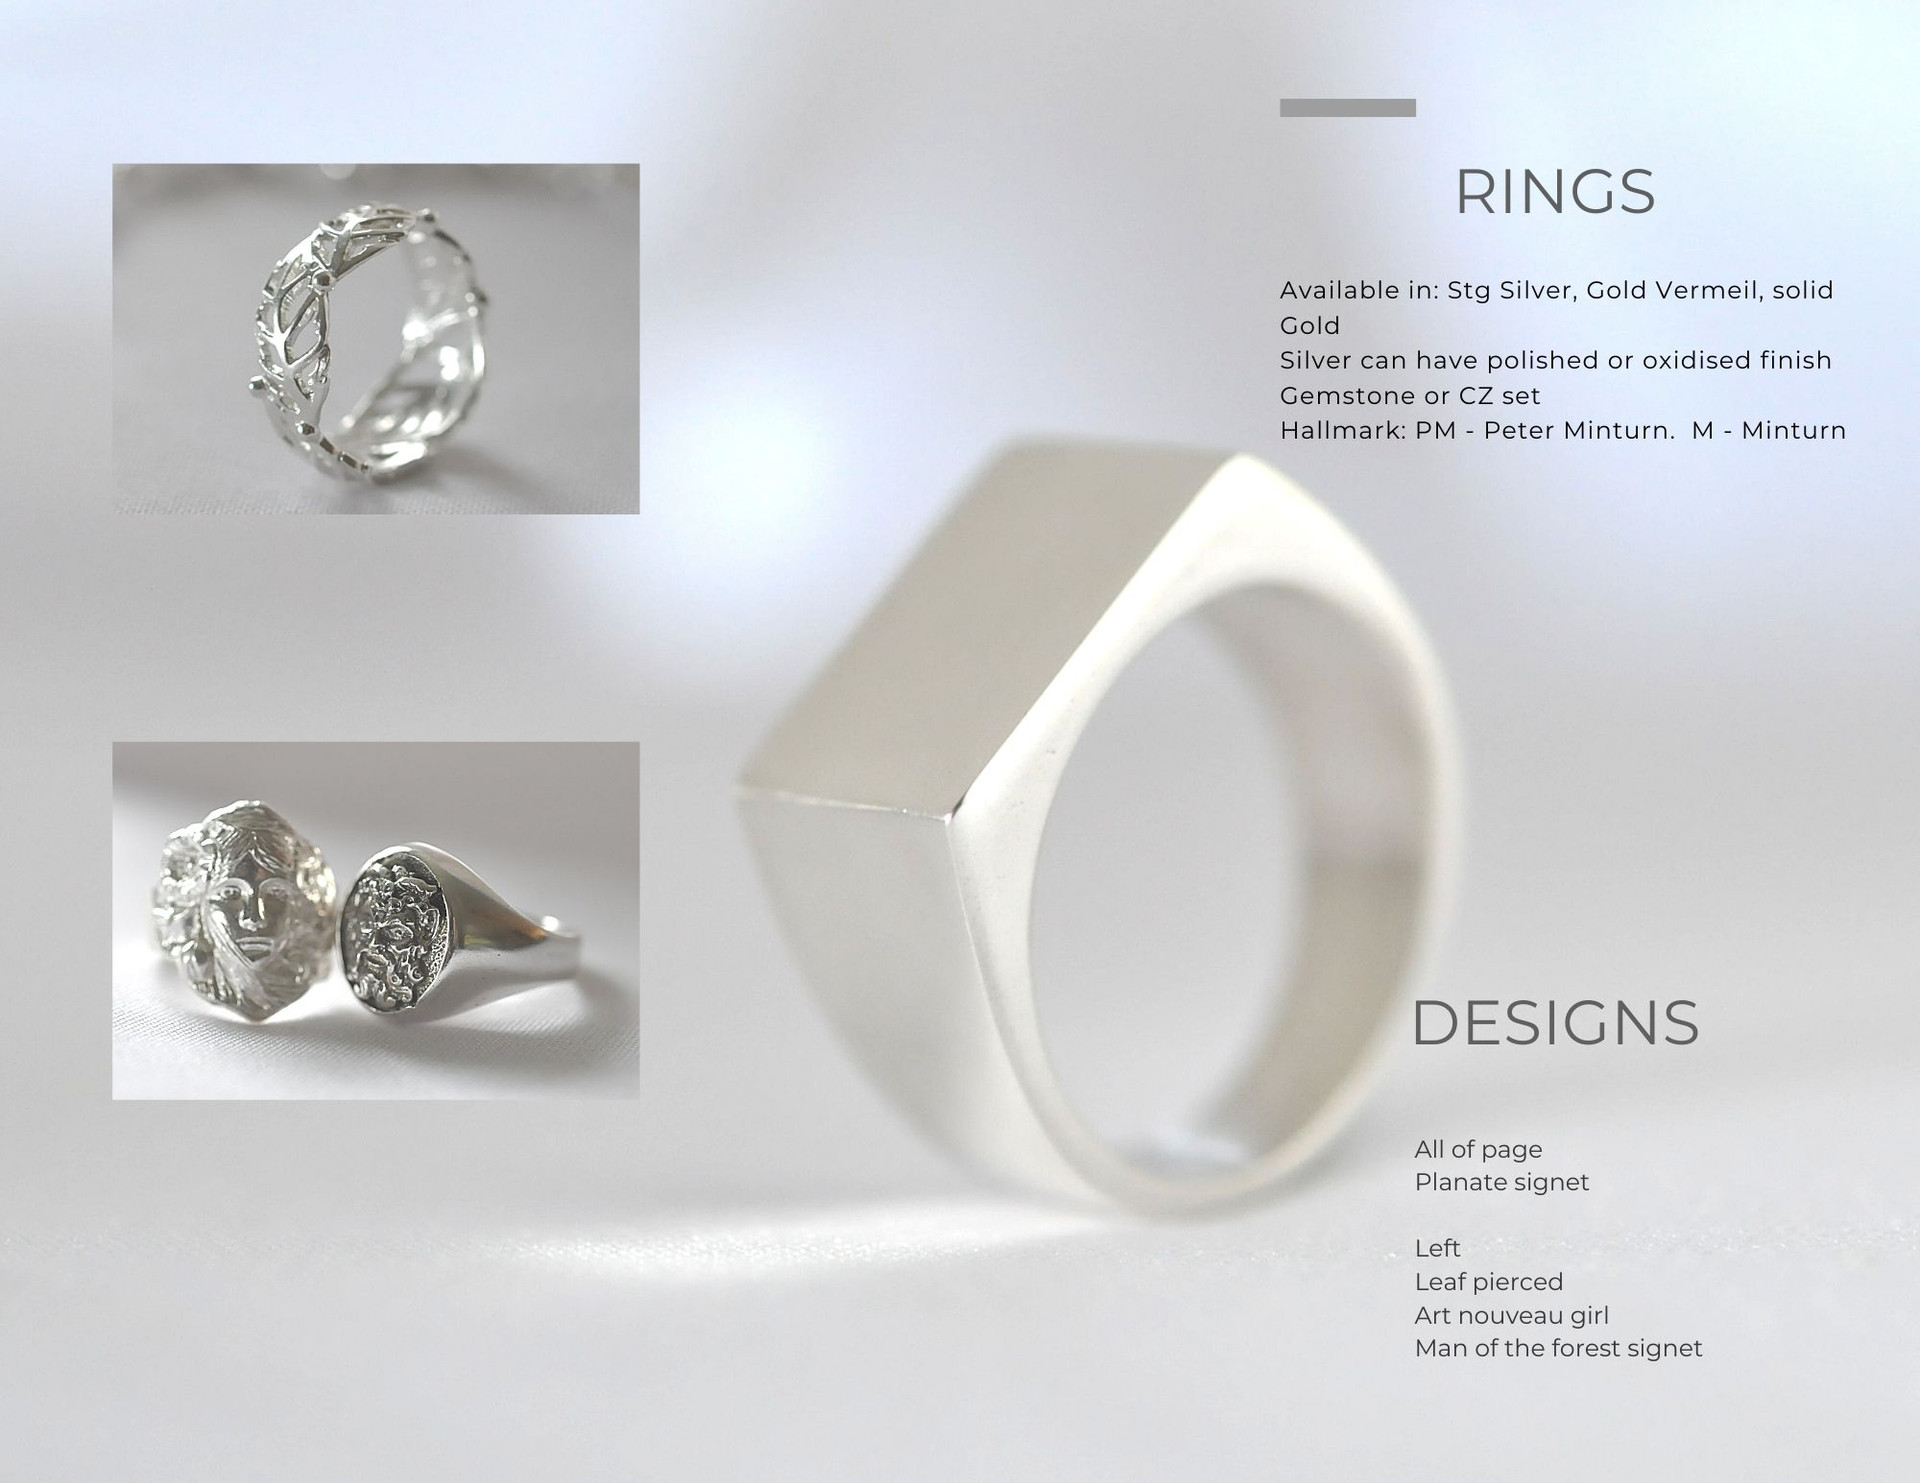 Textured & Polished Rings